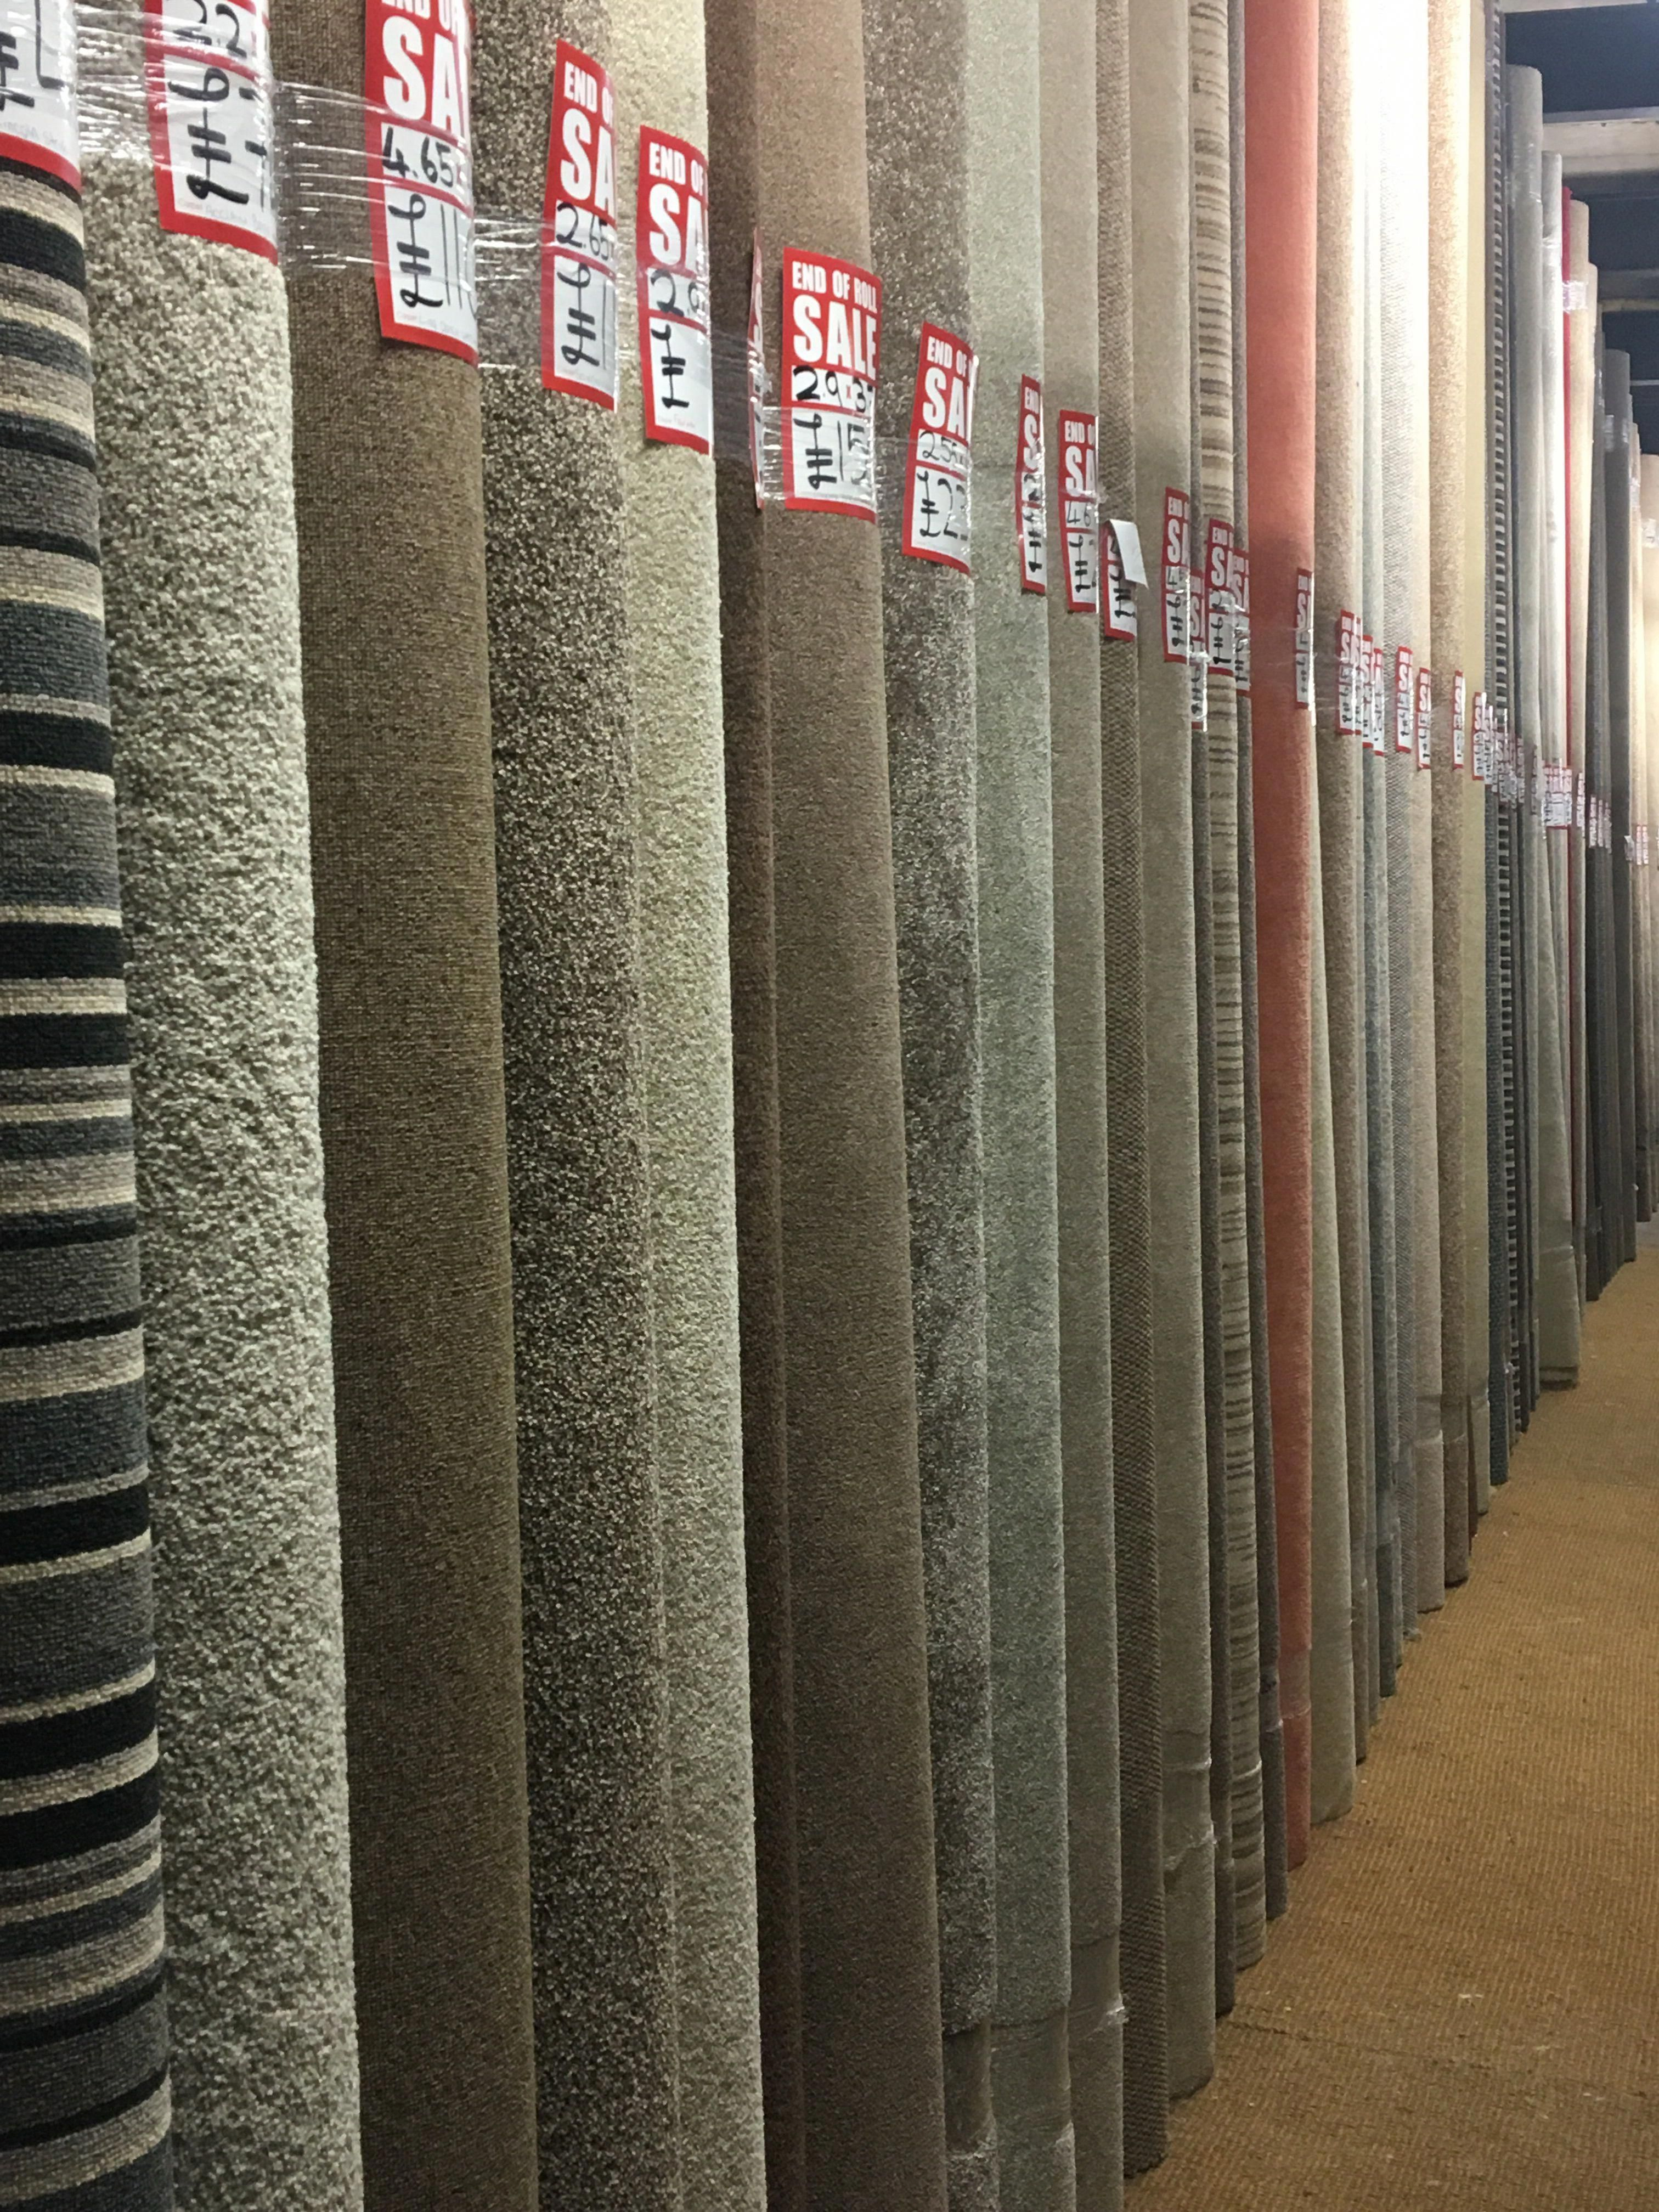 50 OFF marked prices on carpet & vinyl remnants in our